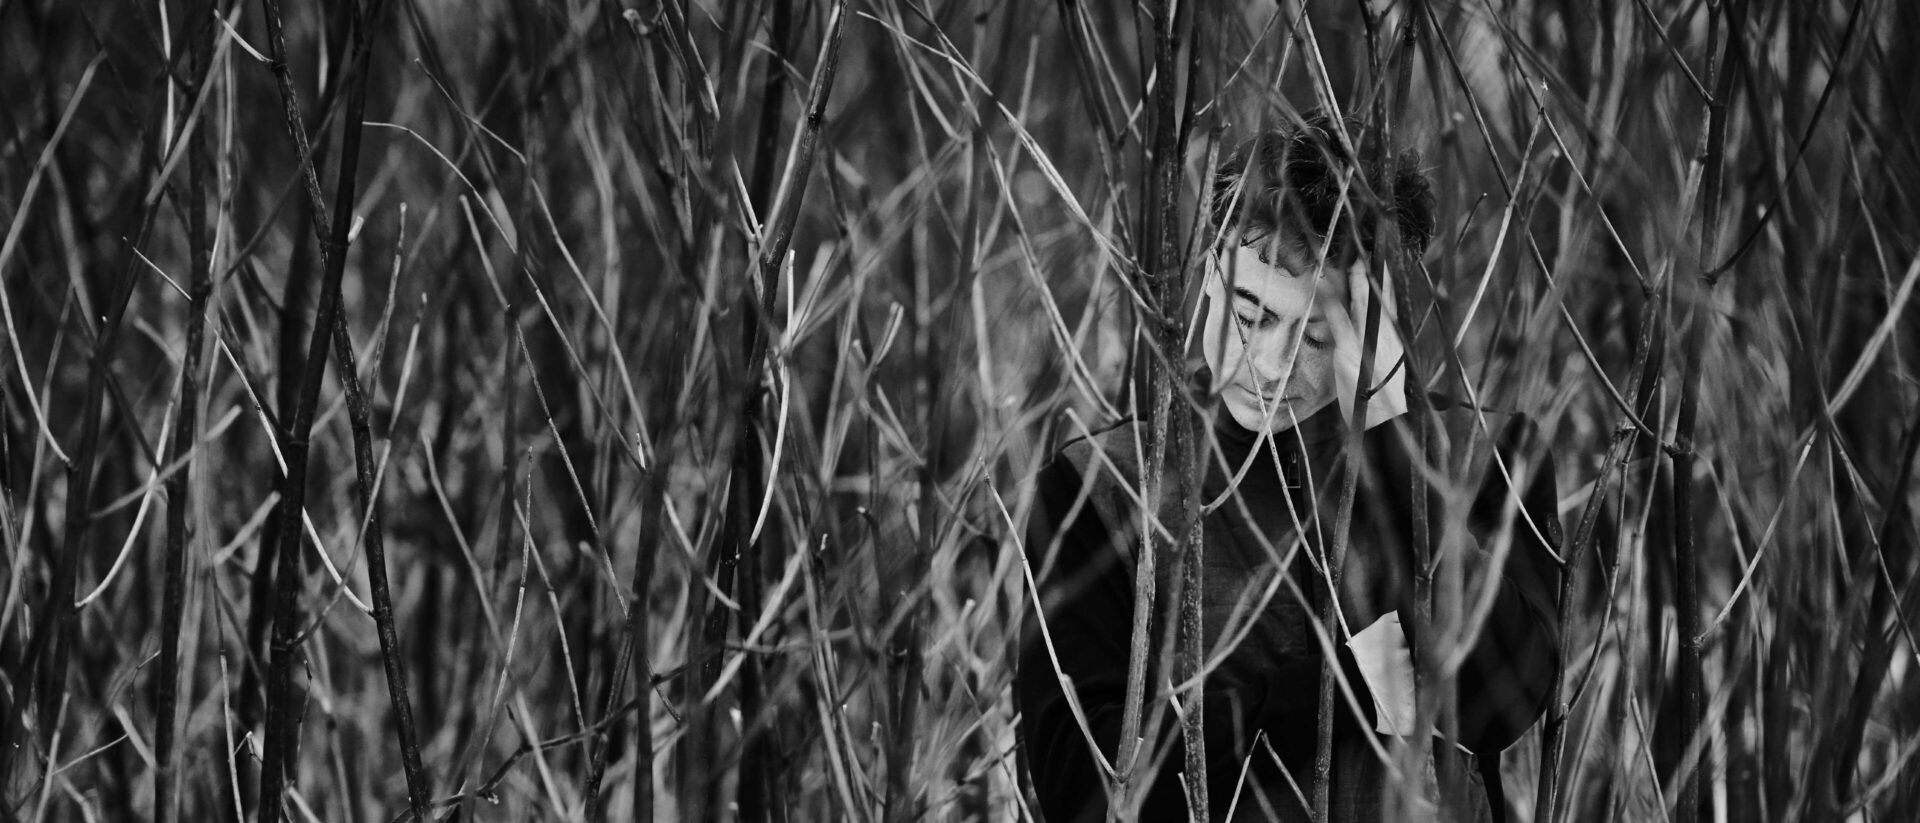 Professional photo of Paul Lewis posed in amongst a field of reeds